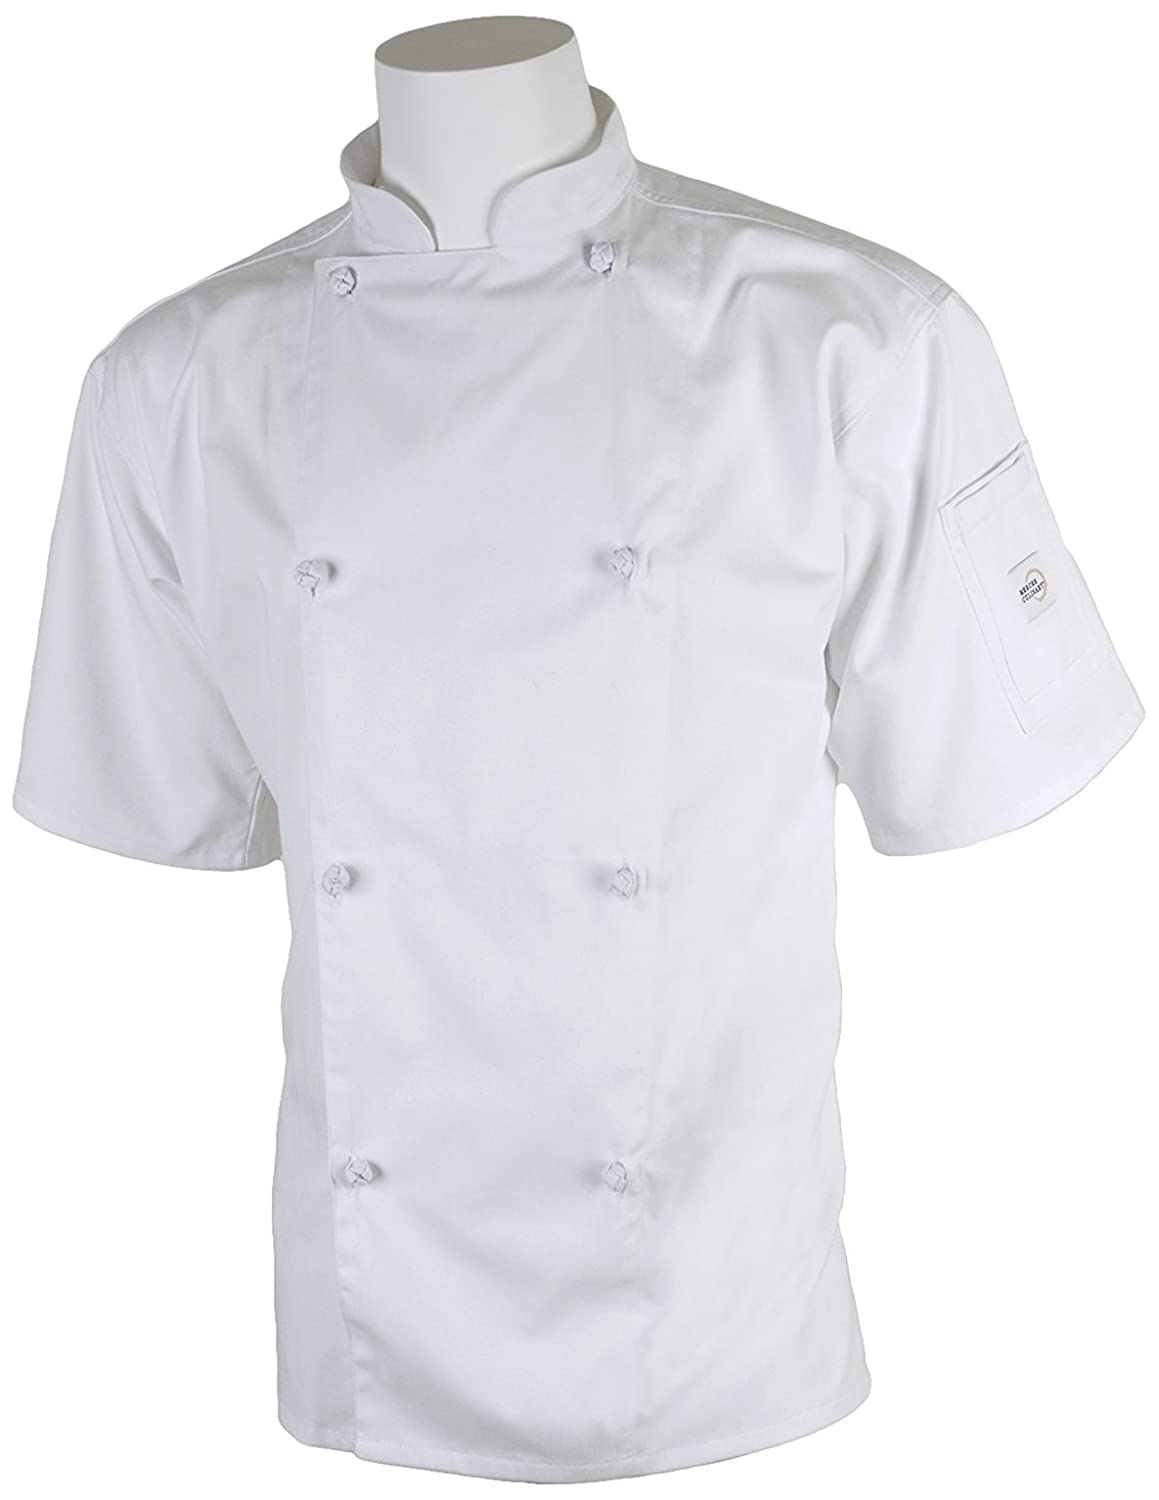 Mercer Culinary M61022WH2X Genesis Unisex Short Sleeve Chef Jacket with Cloth Knot Buttons, XX-Large, White